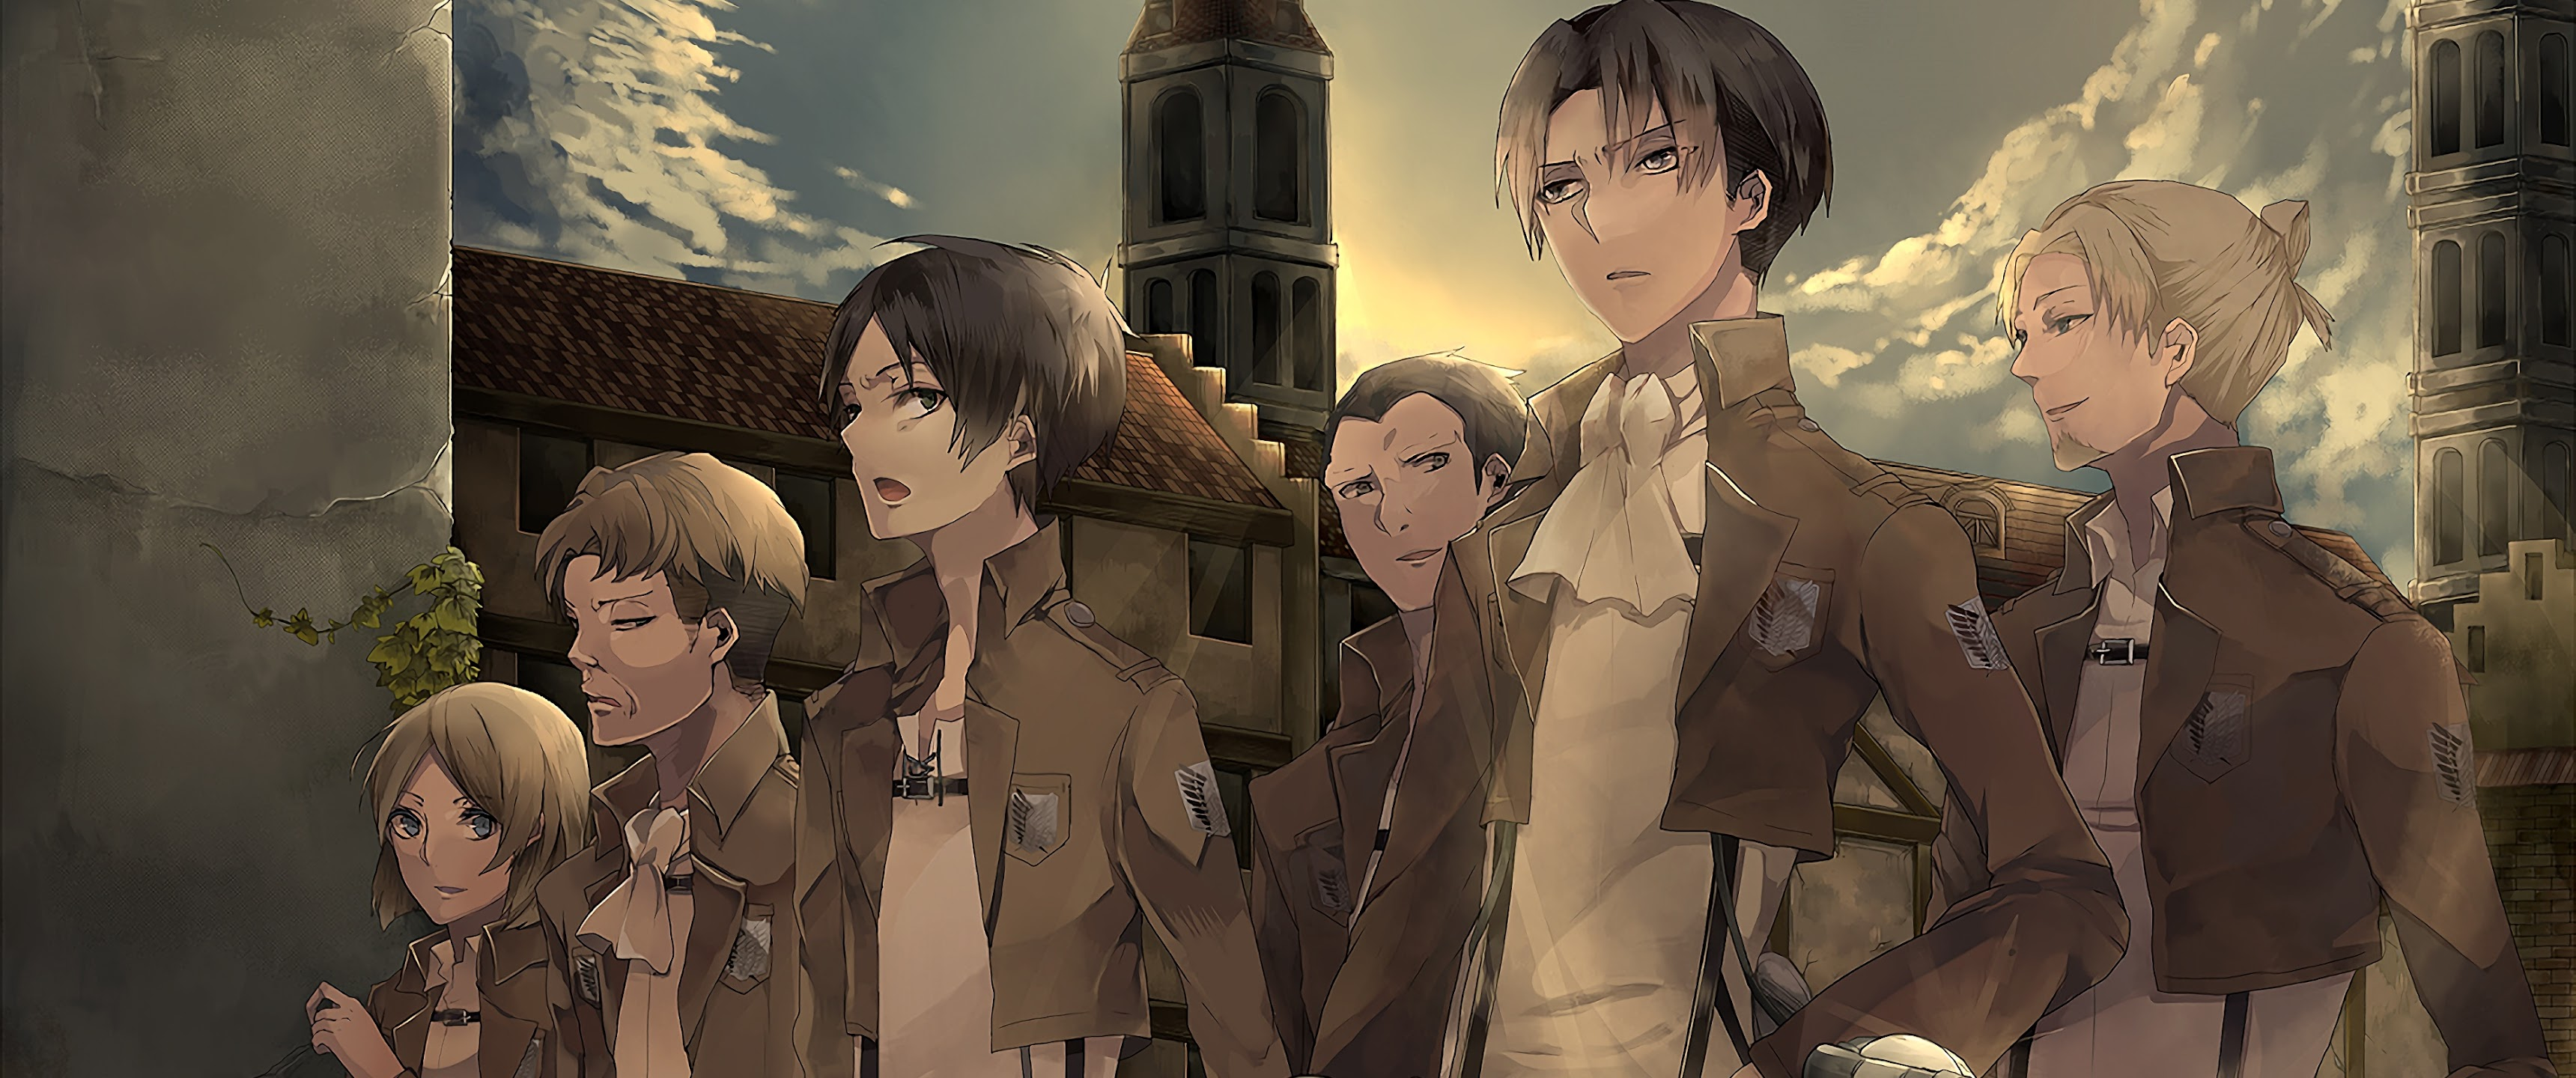 Levi Eren Survey Corps Attack On Titan 4k Wallpaper 18